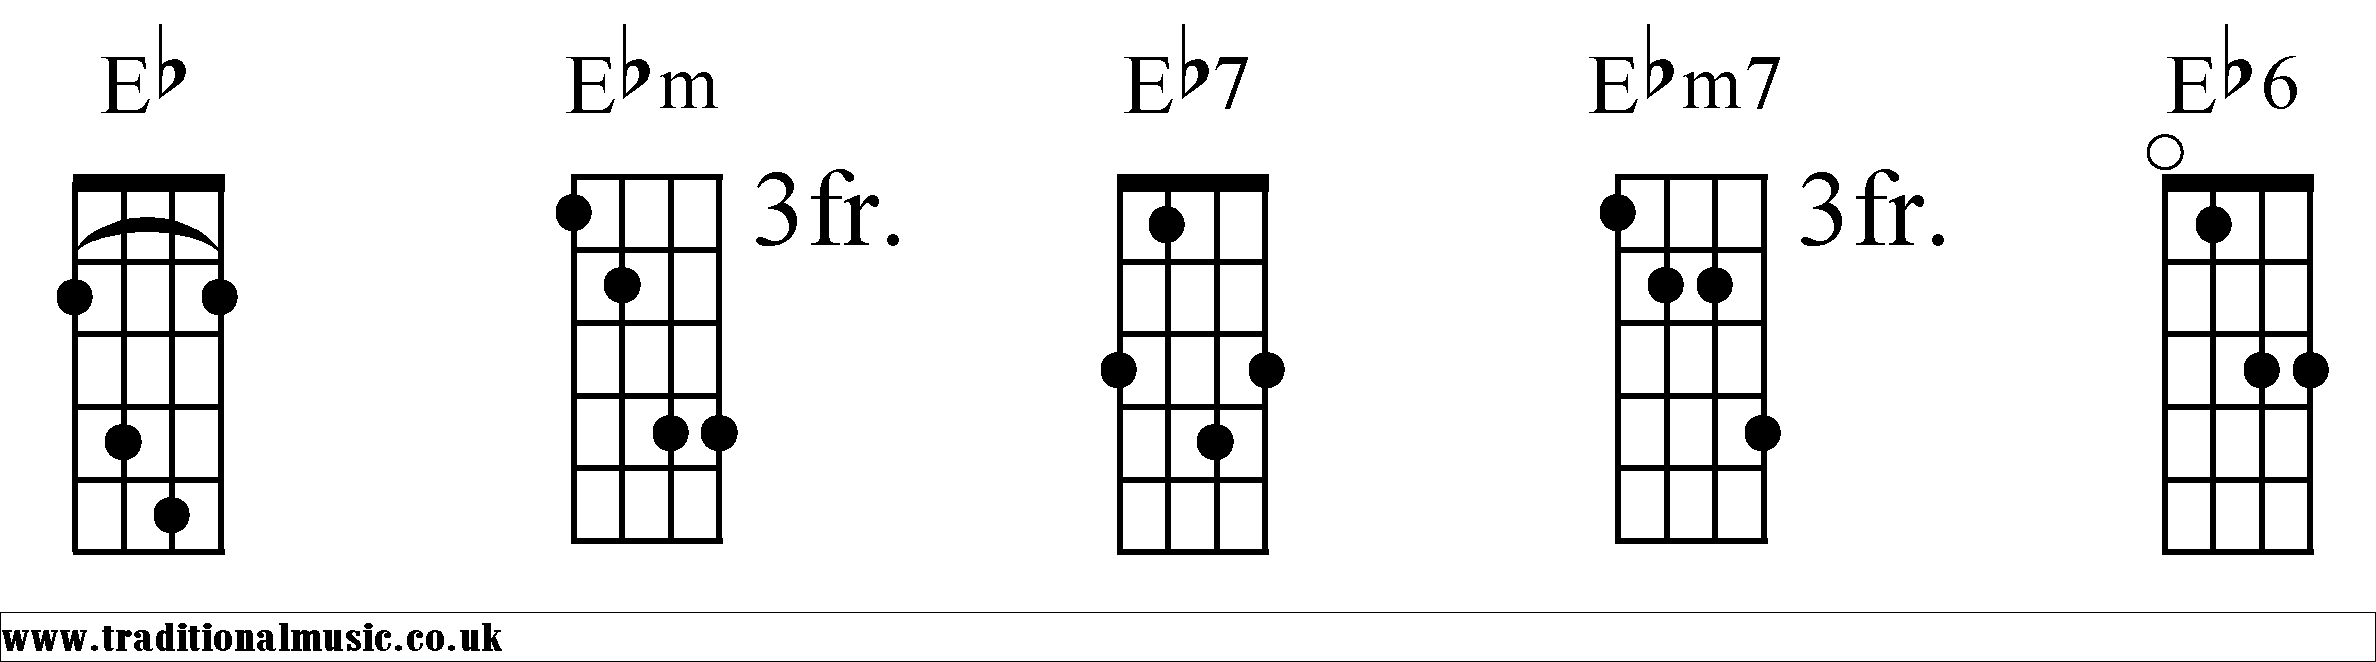 Ebd chord banjo chords hexwebz Image collections